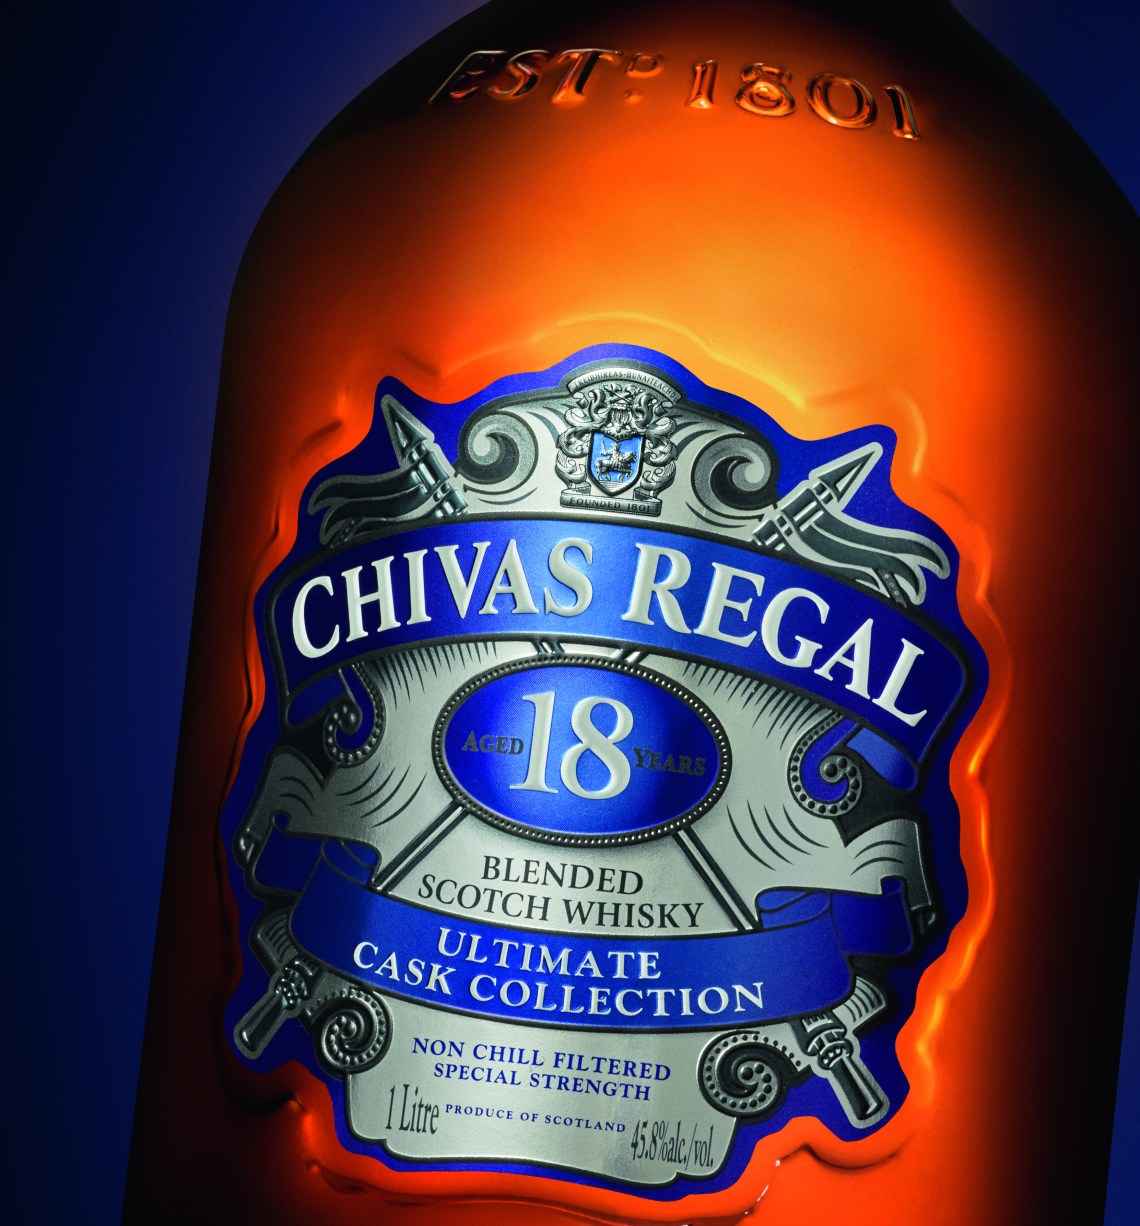 Chivas Regal 18 Years Old Ultimate Cask Collection First Fill American Oak Finish